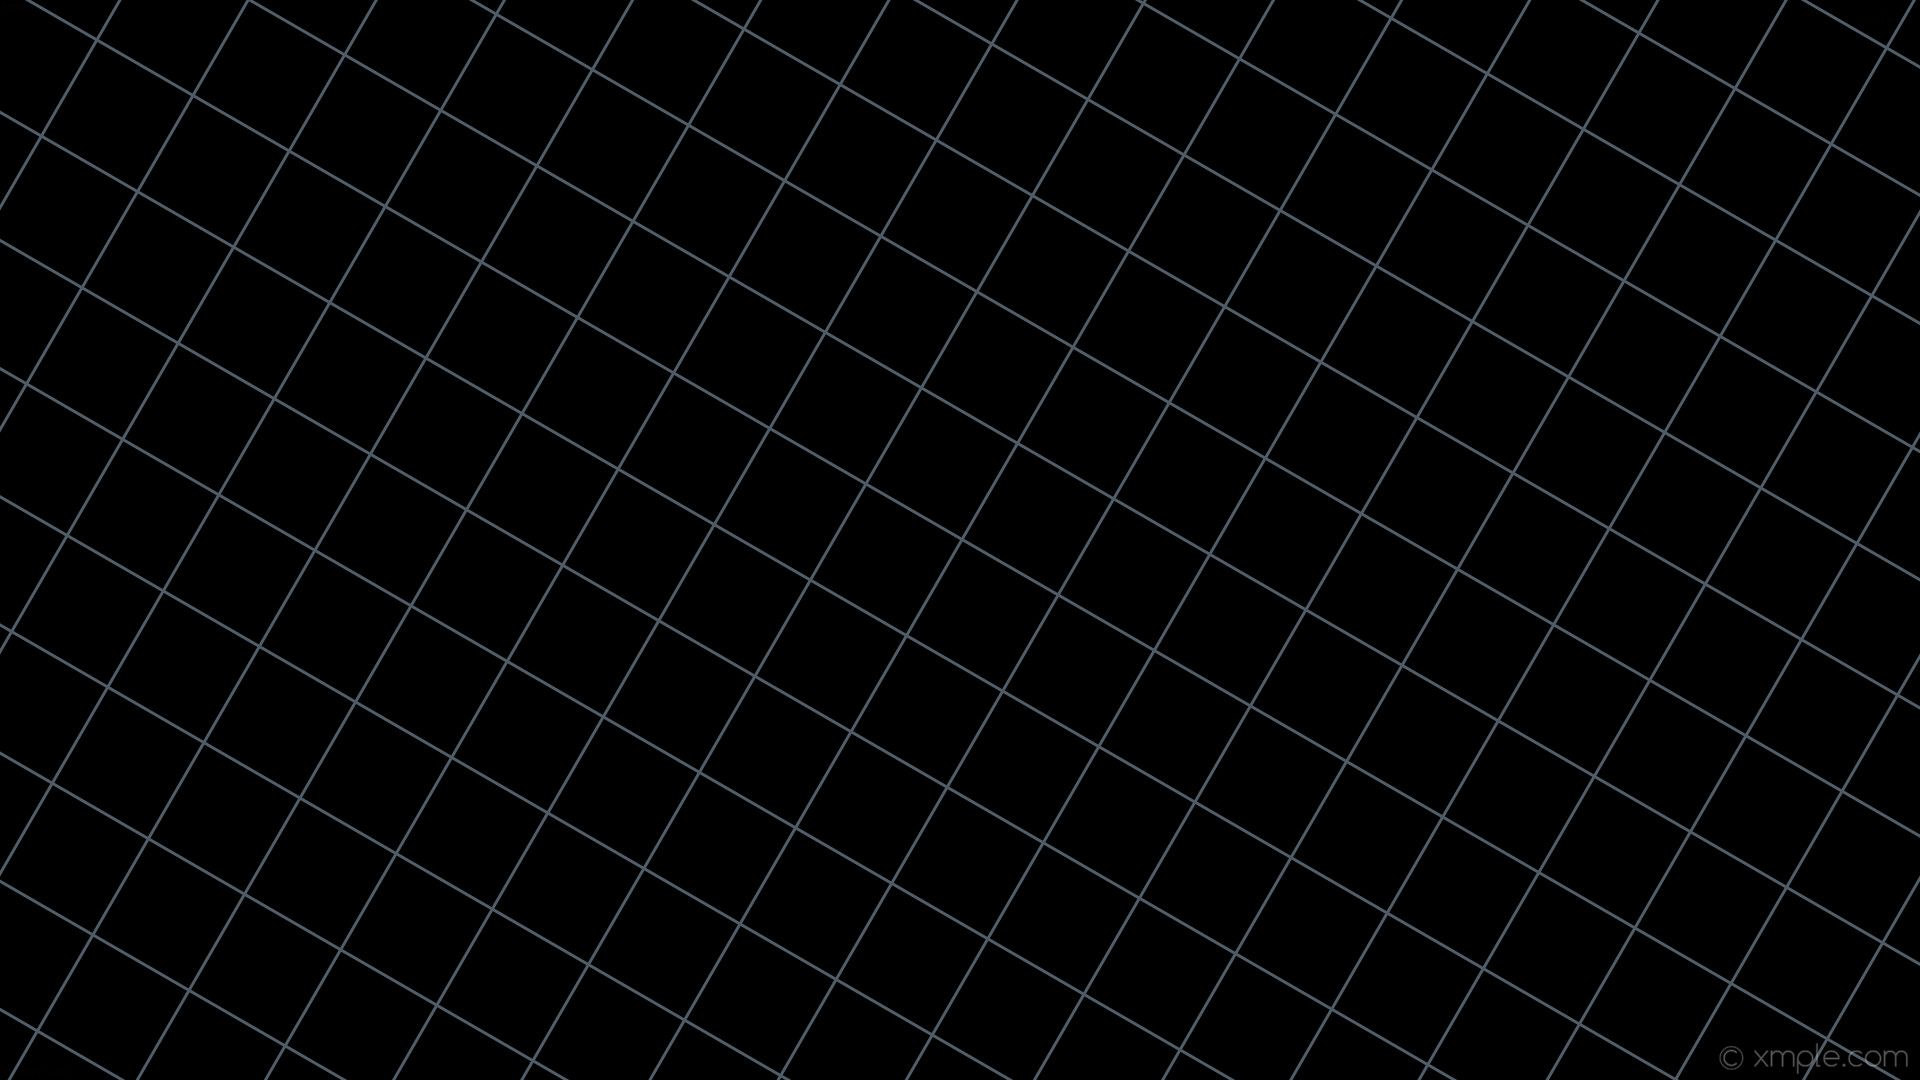 1920x1080 68+ Black Grid Wallpapers on WallpaperPlay